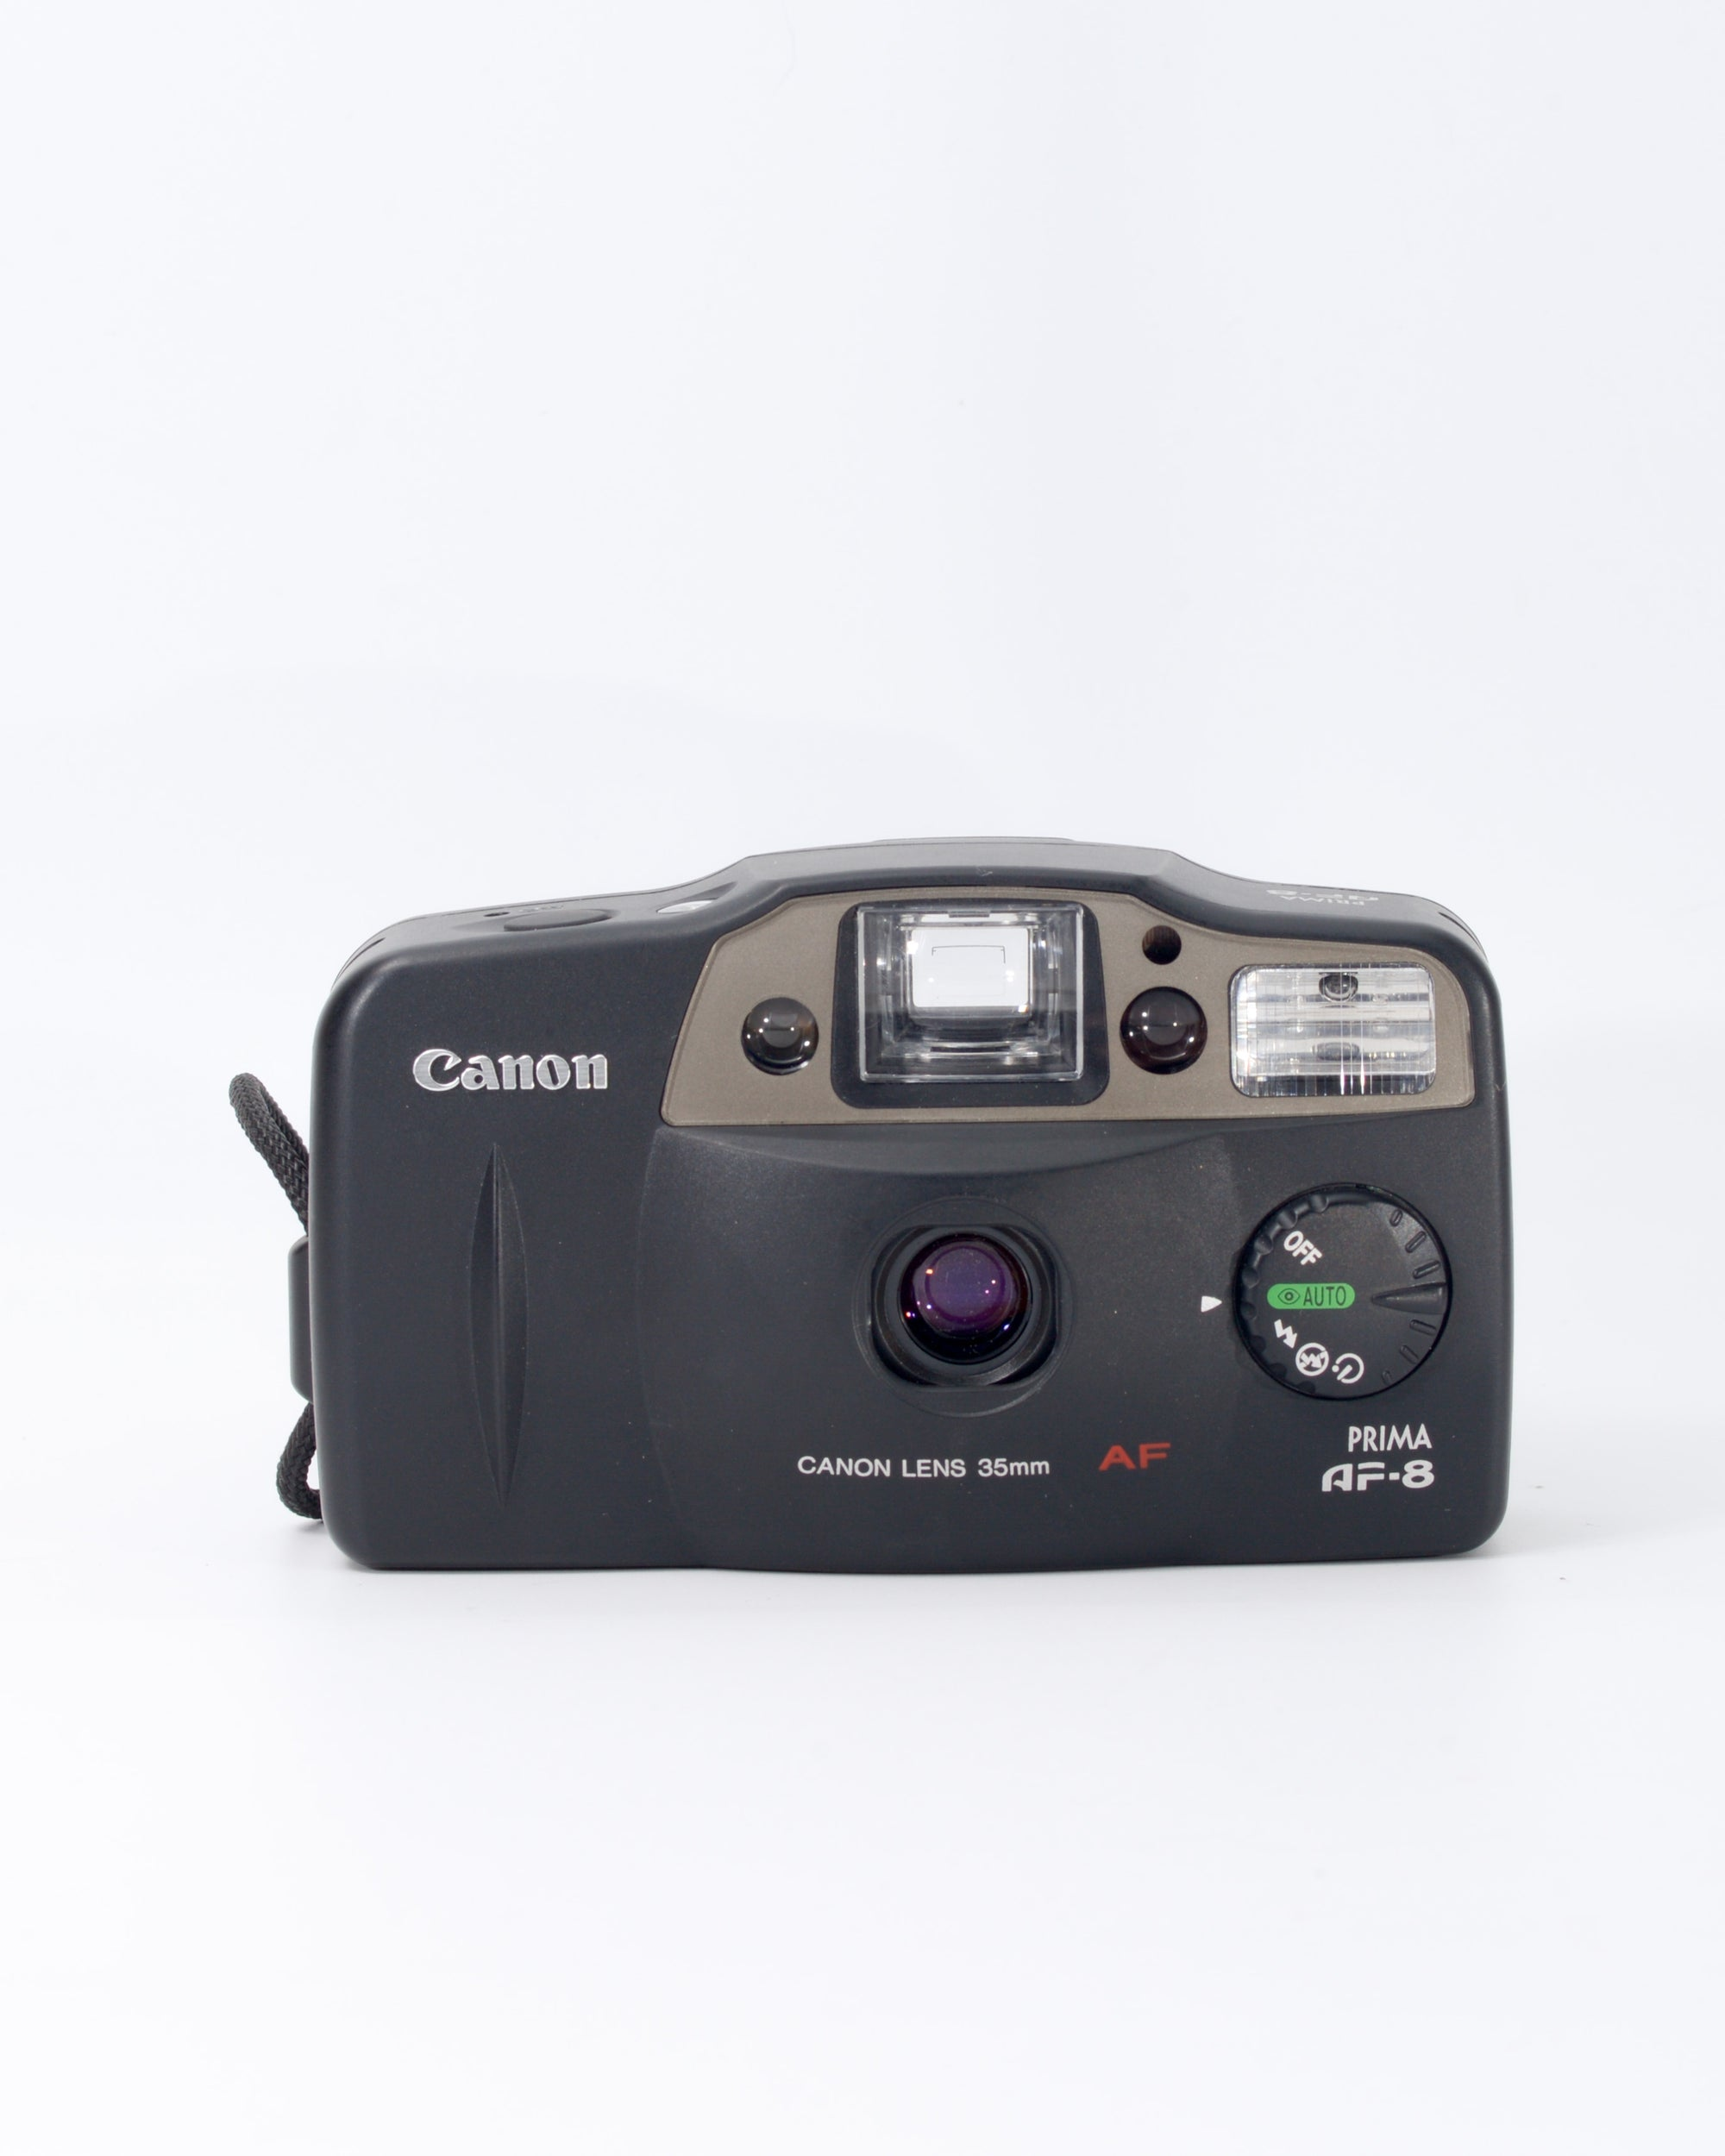 Canon Prima AF-8 35mm Point & Shoot Film Camera with 35mm f4.5 Lens